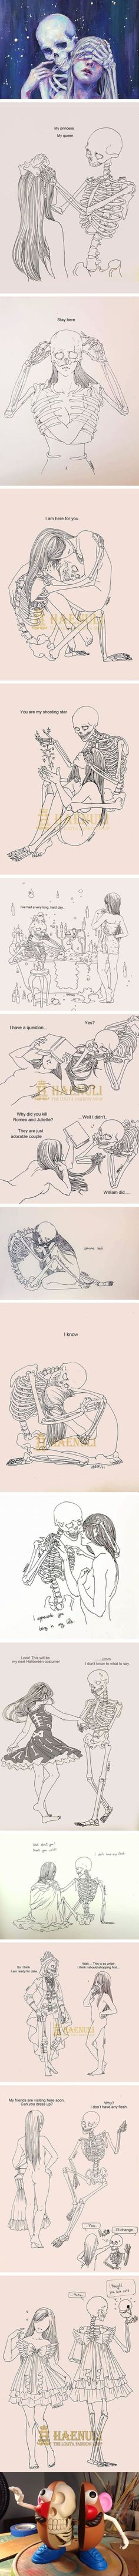 Death-Inspired Love Comics That Artist Haenuli Created To Cope With Her Depression<<<my reason to join the skeleton war Haenuli Shin, Arte Obscura, Cute Comics, Dark Art, Oeuvre D'art, Art Inspo, Amazing Art, Awesome, Art Reference